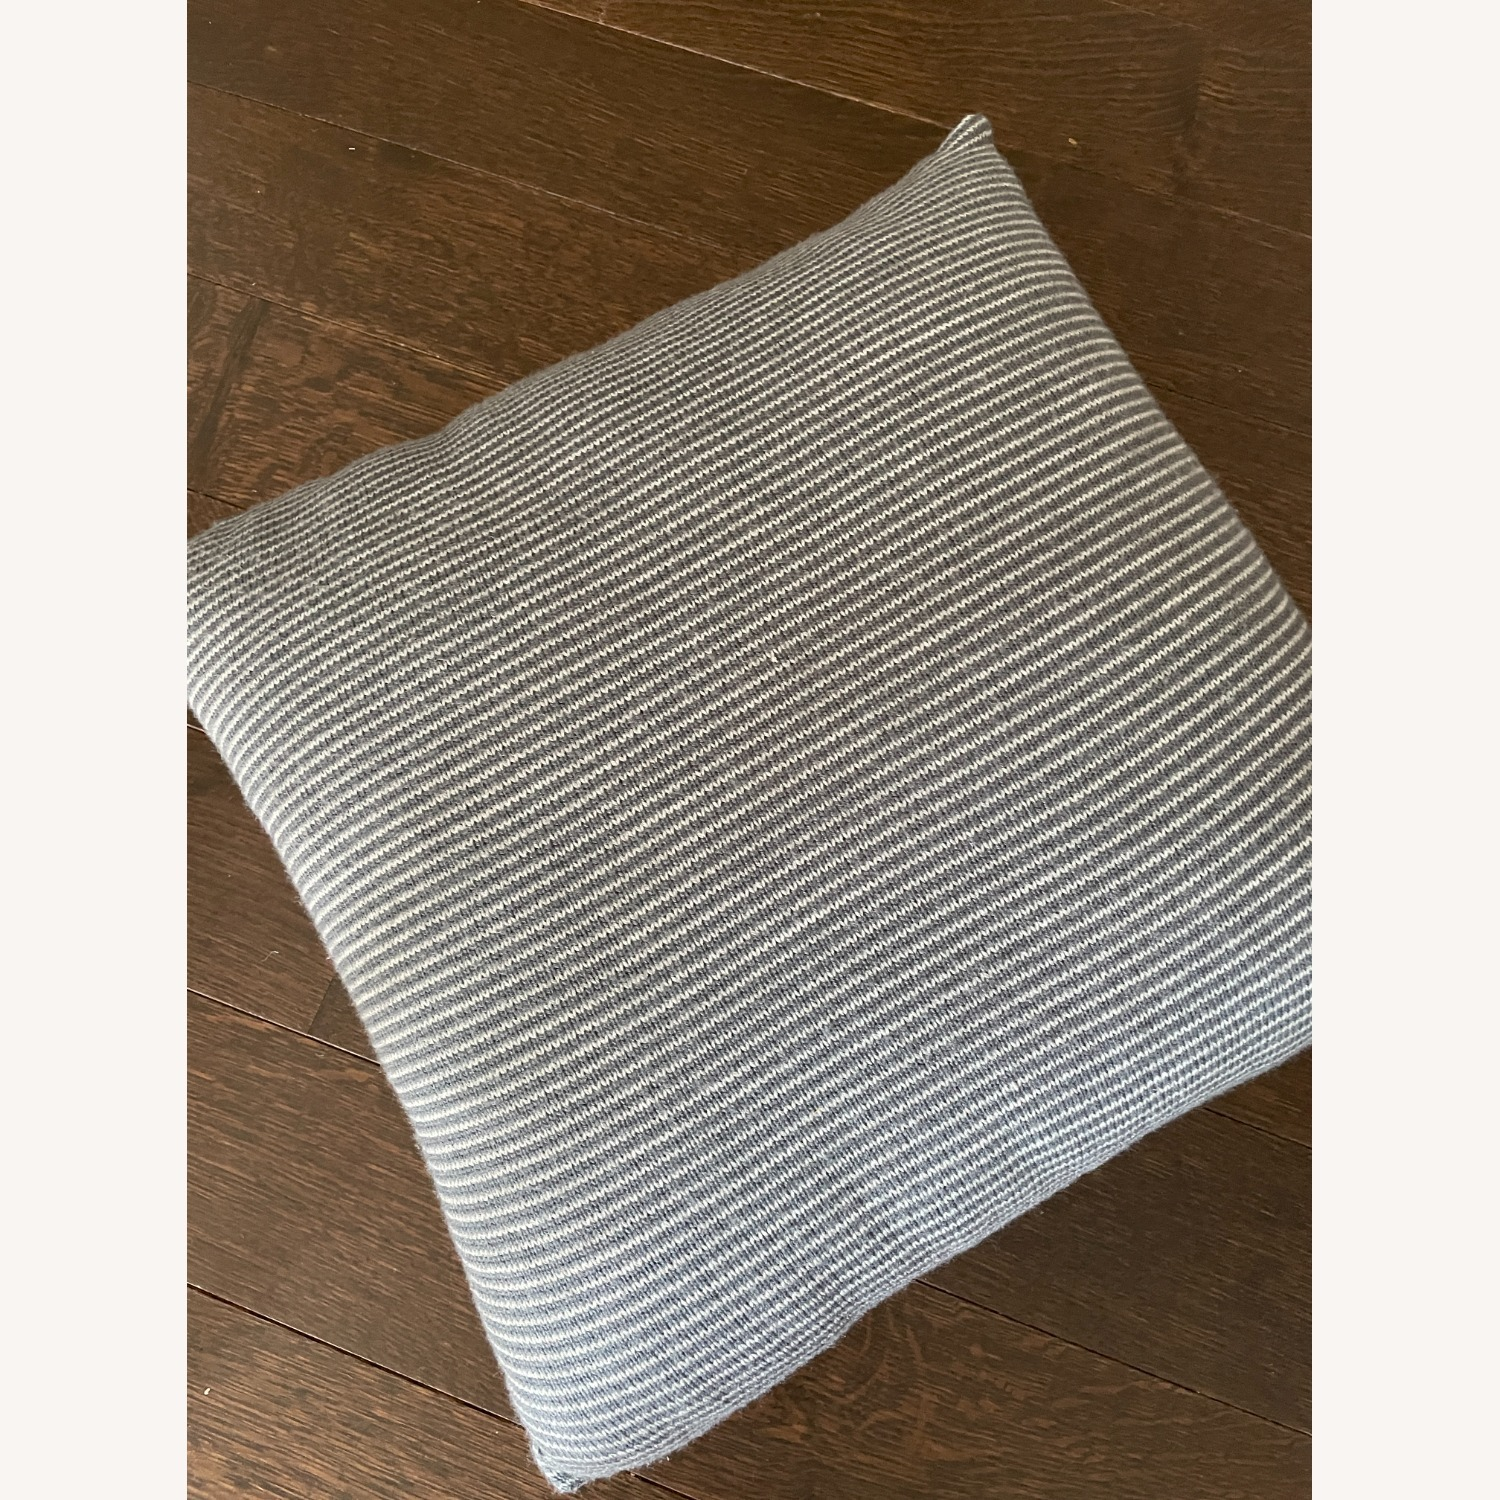 Kenneth Cole Home Set of Pillows - image-4